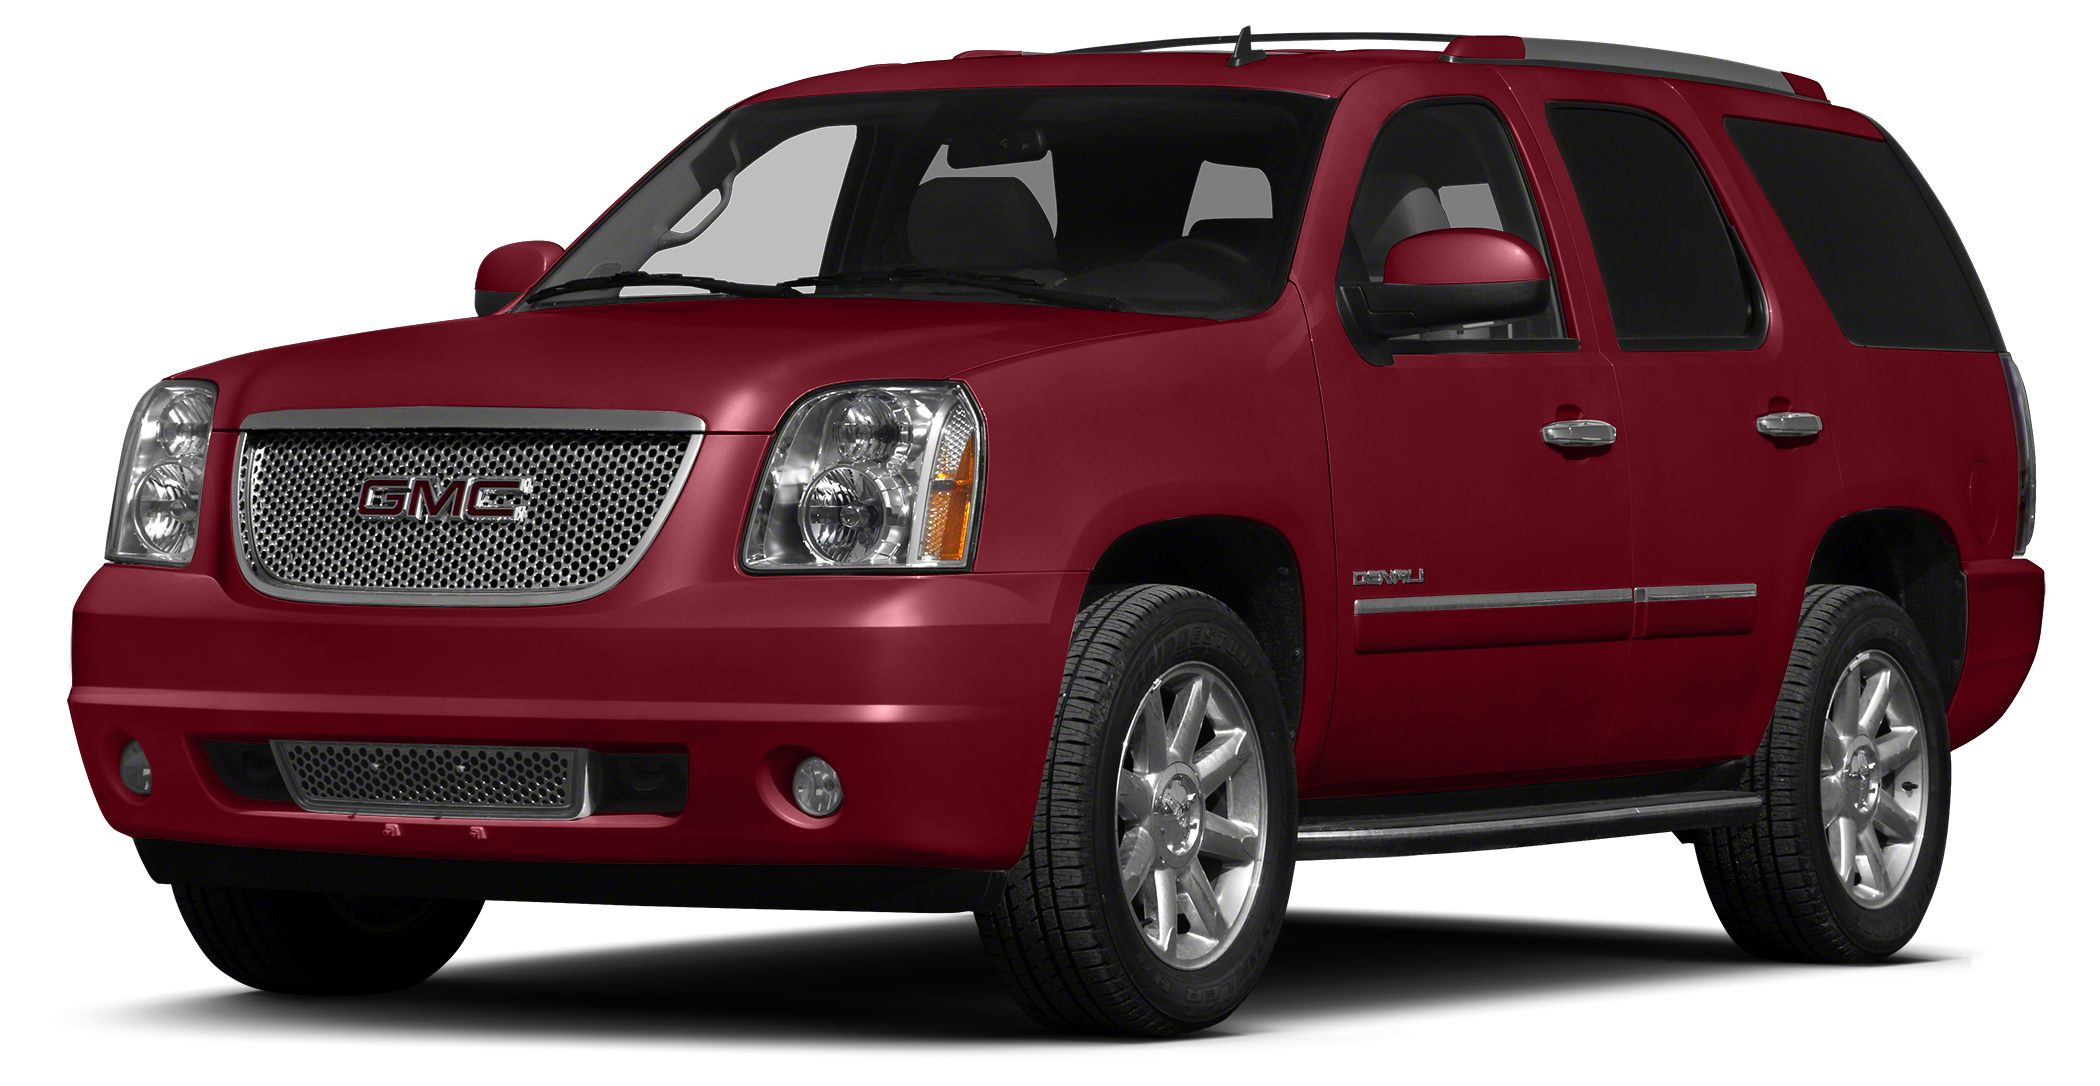 2014 GMC Yukon Denali A ONE OWNER LOCAL TRADE-IN WITH LOW MILES Buy with confidence - local trade